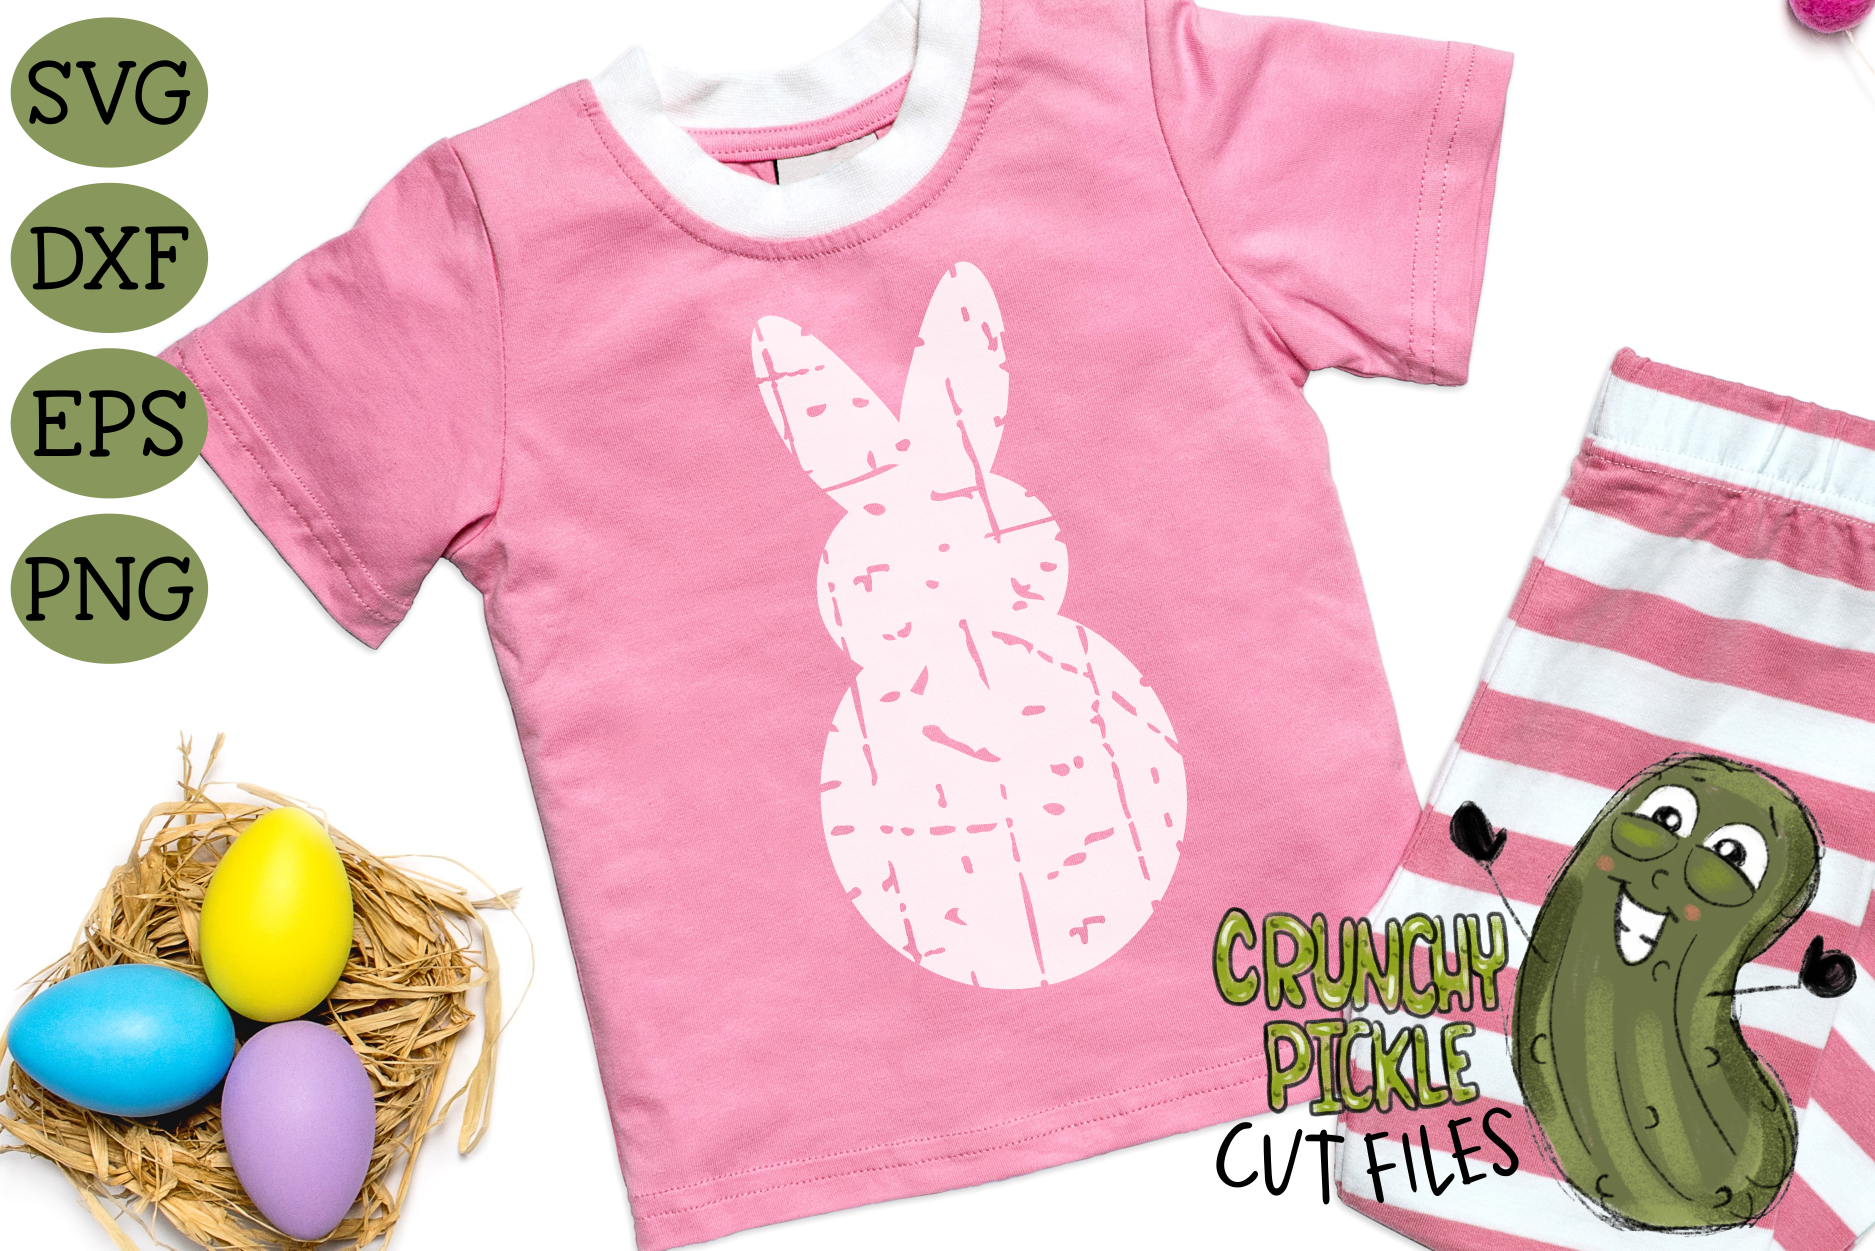 Plaid & Grunge Spring Easter Bunny 1 SVG Cut File example image 2